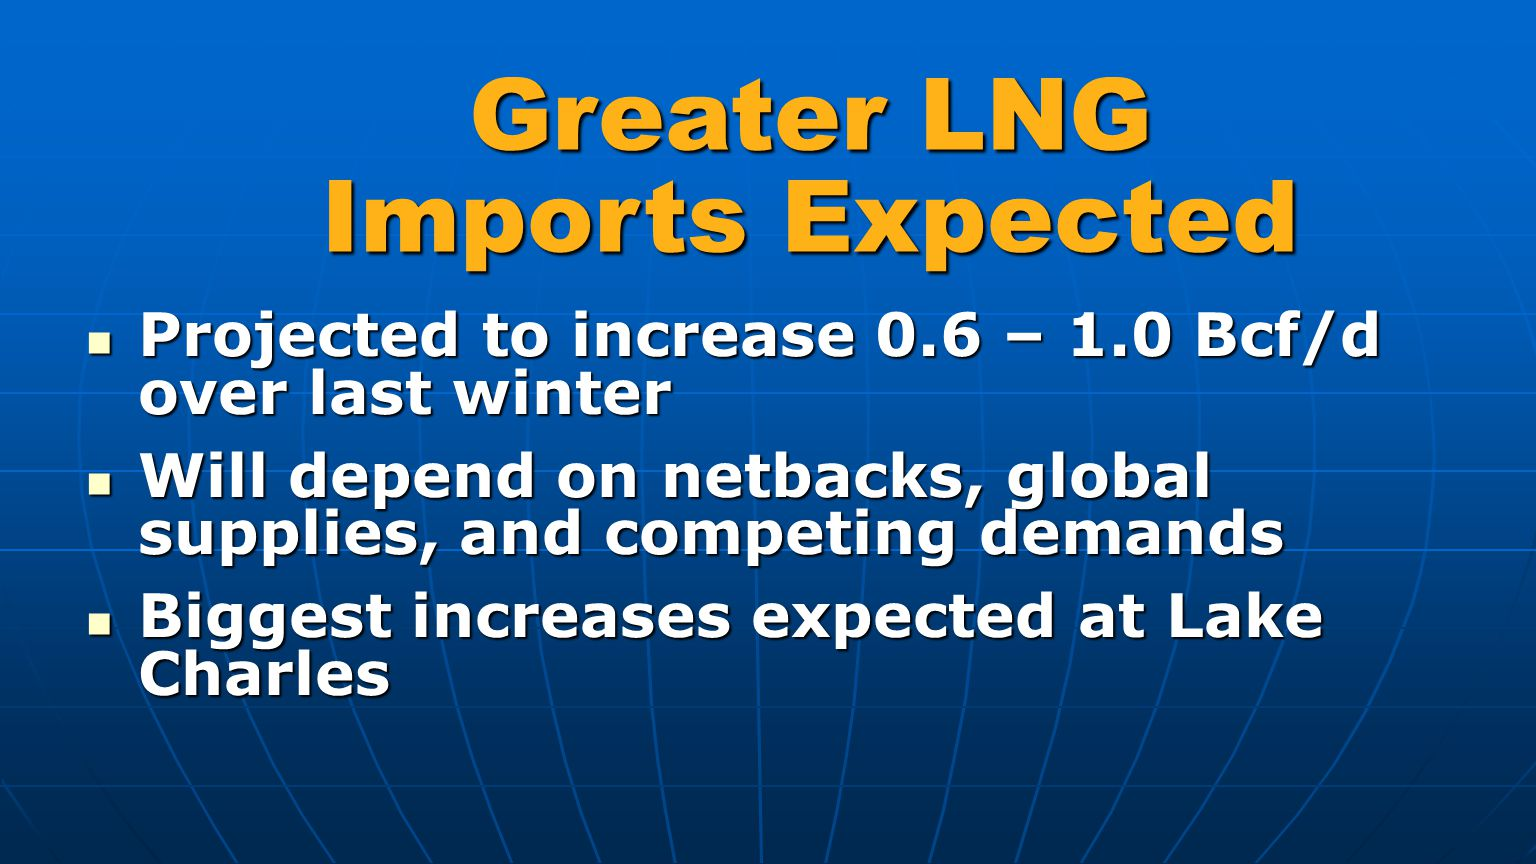 Greater LNG Imports Expected Projected to increase 0.6 – 1.0 Bcf/d over last winter Projected to increase 0.6 – 1.0 Bcf/d over last winter Will depend on netbacks, global supplies, and competing demands Will depend on netbacks, global supplies, and competing demands Biggest increases expected at Lake Charles Biggest increases expected at Lake Charles